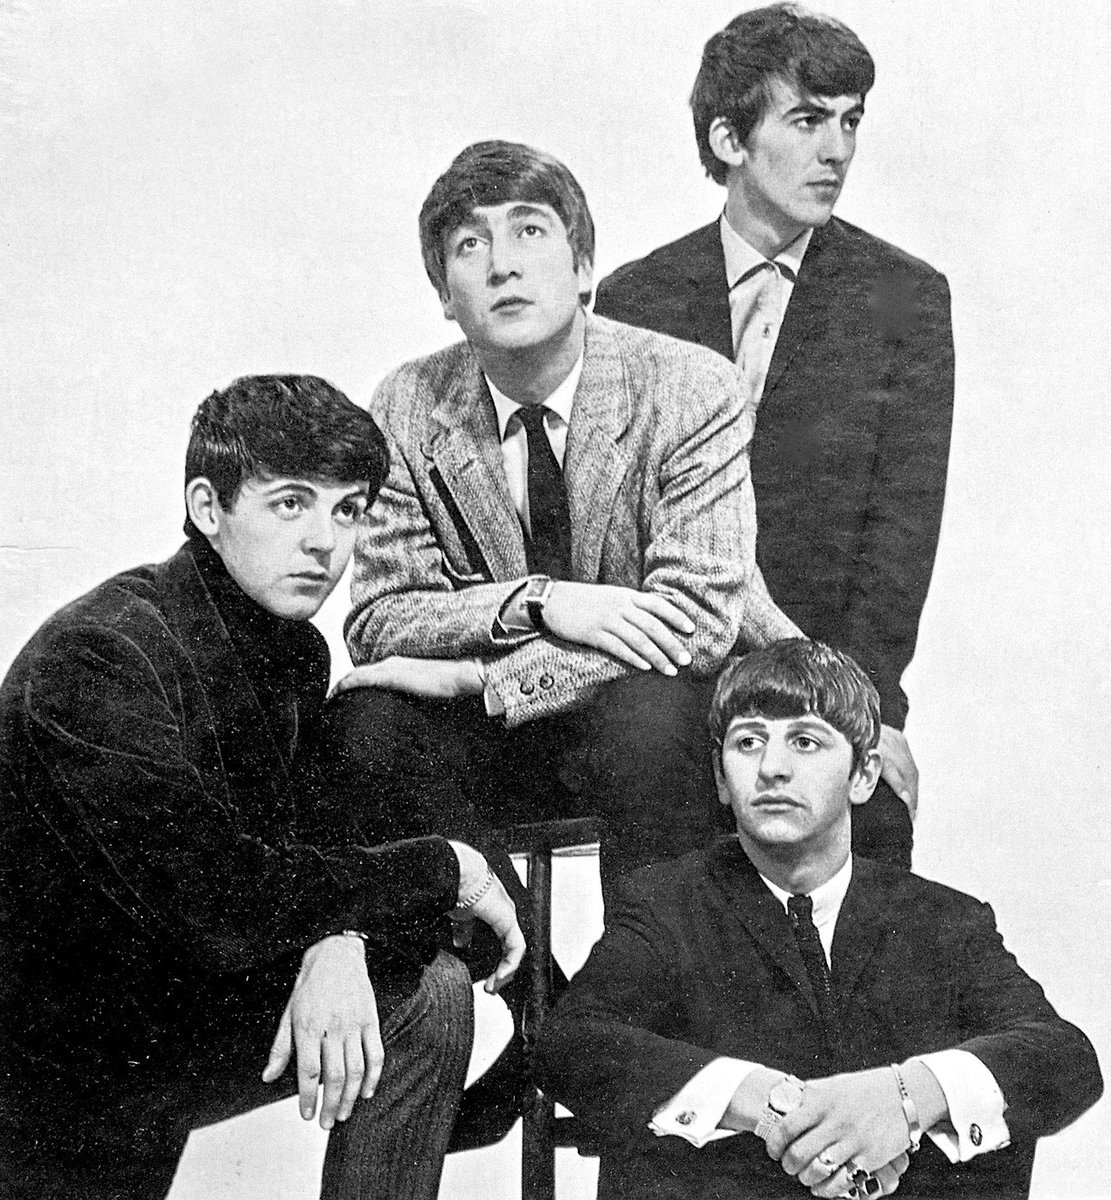 Just #TheBeatles at an early photo shooting in 1963